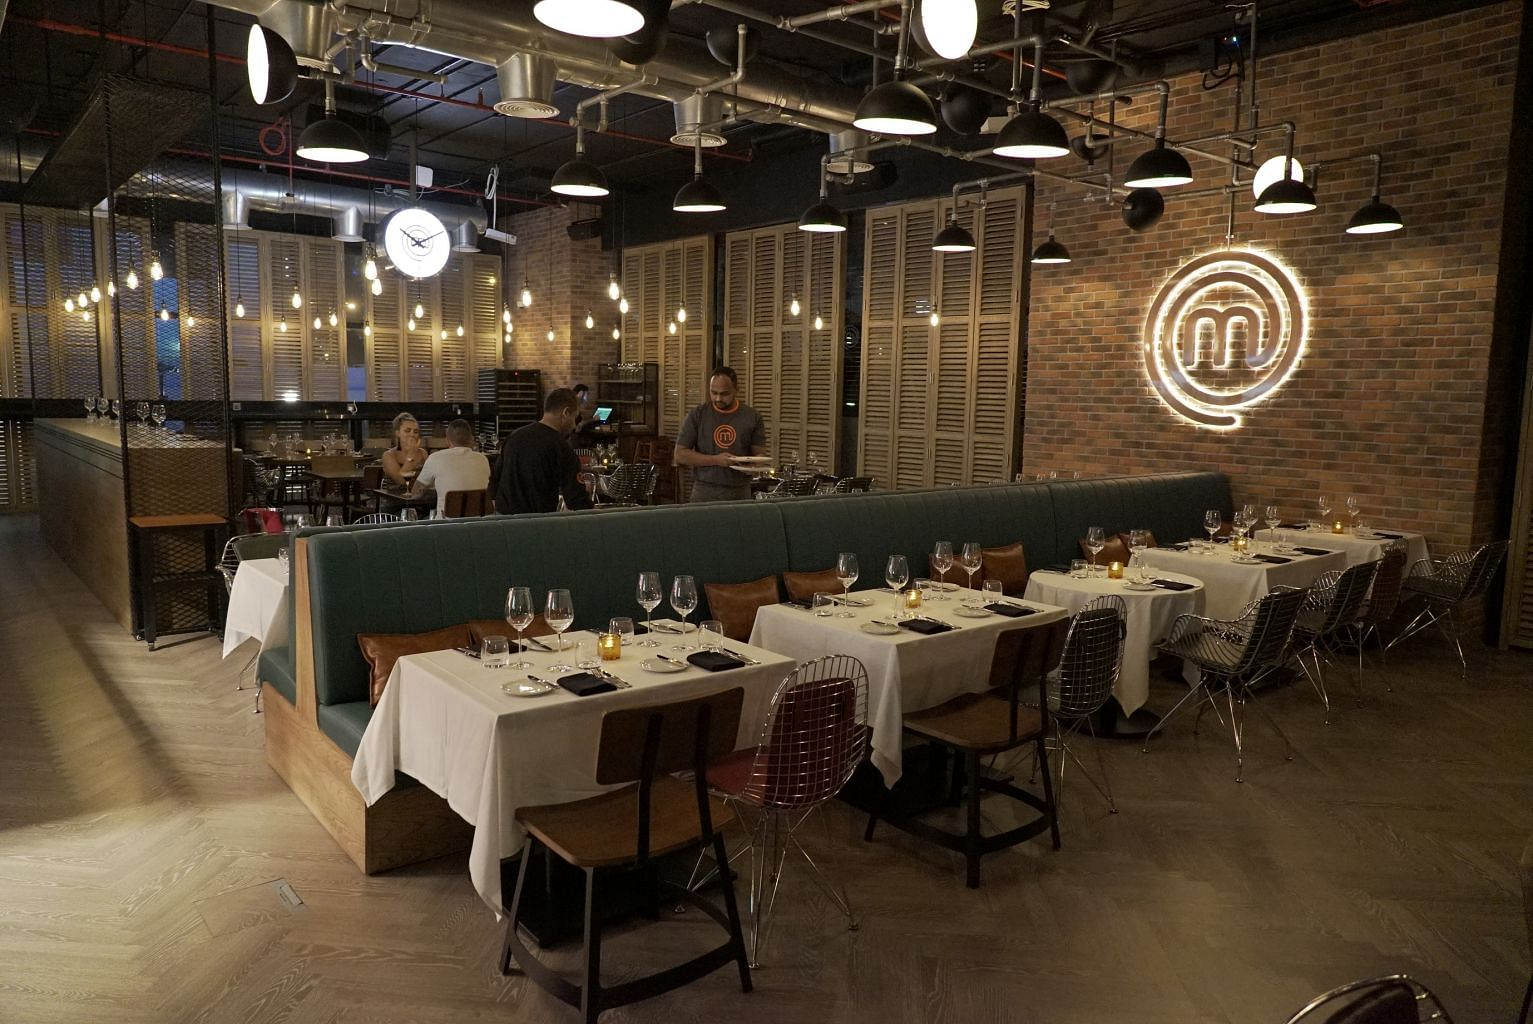 The interior of MasterChef, The TV Experience restaurant, which is based on the popular reality TV show MasterChef.